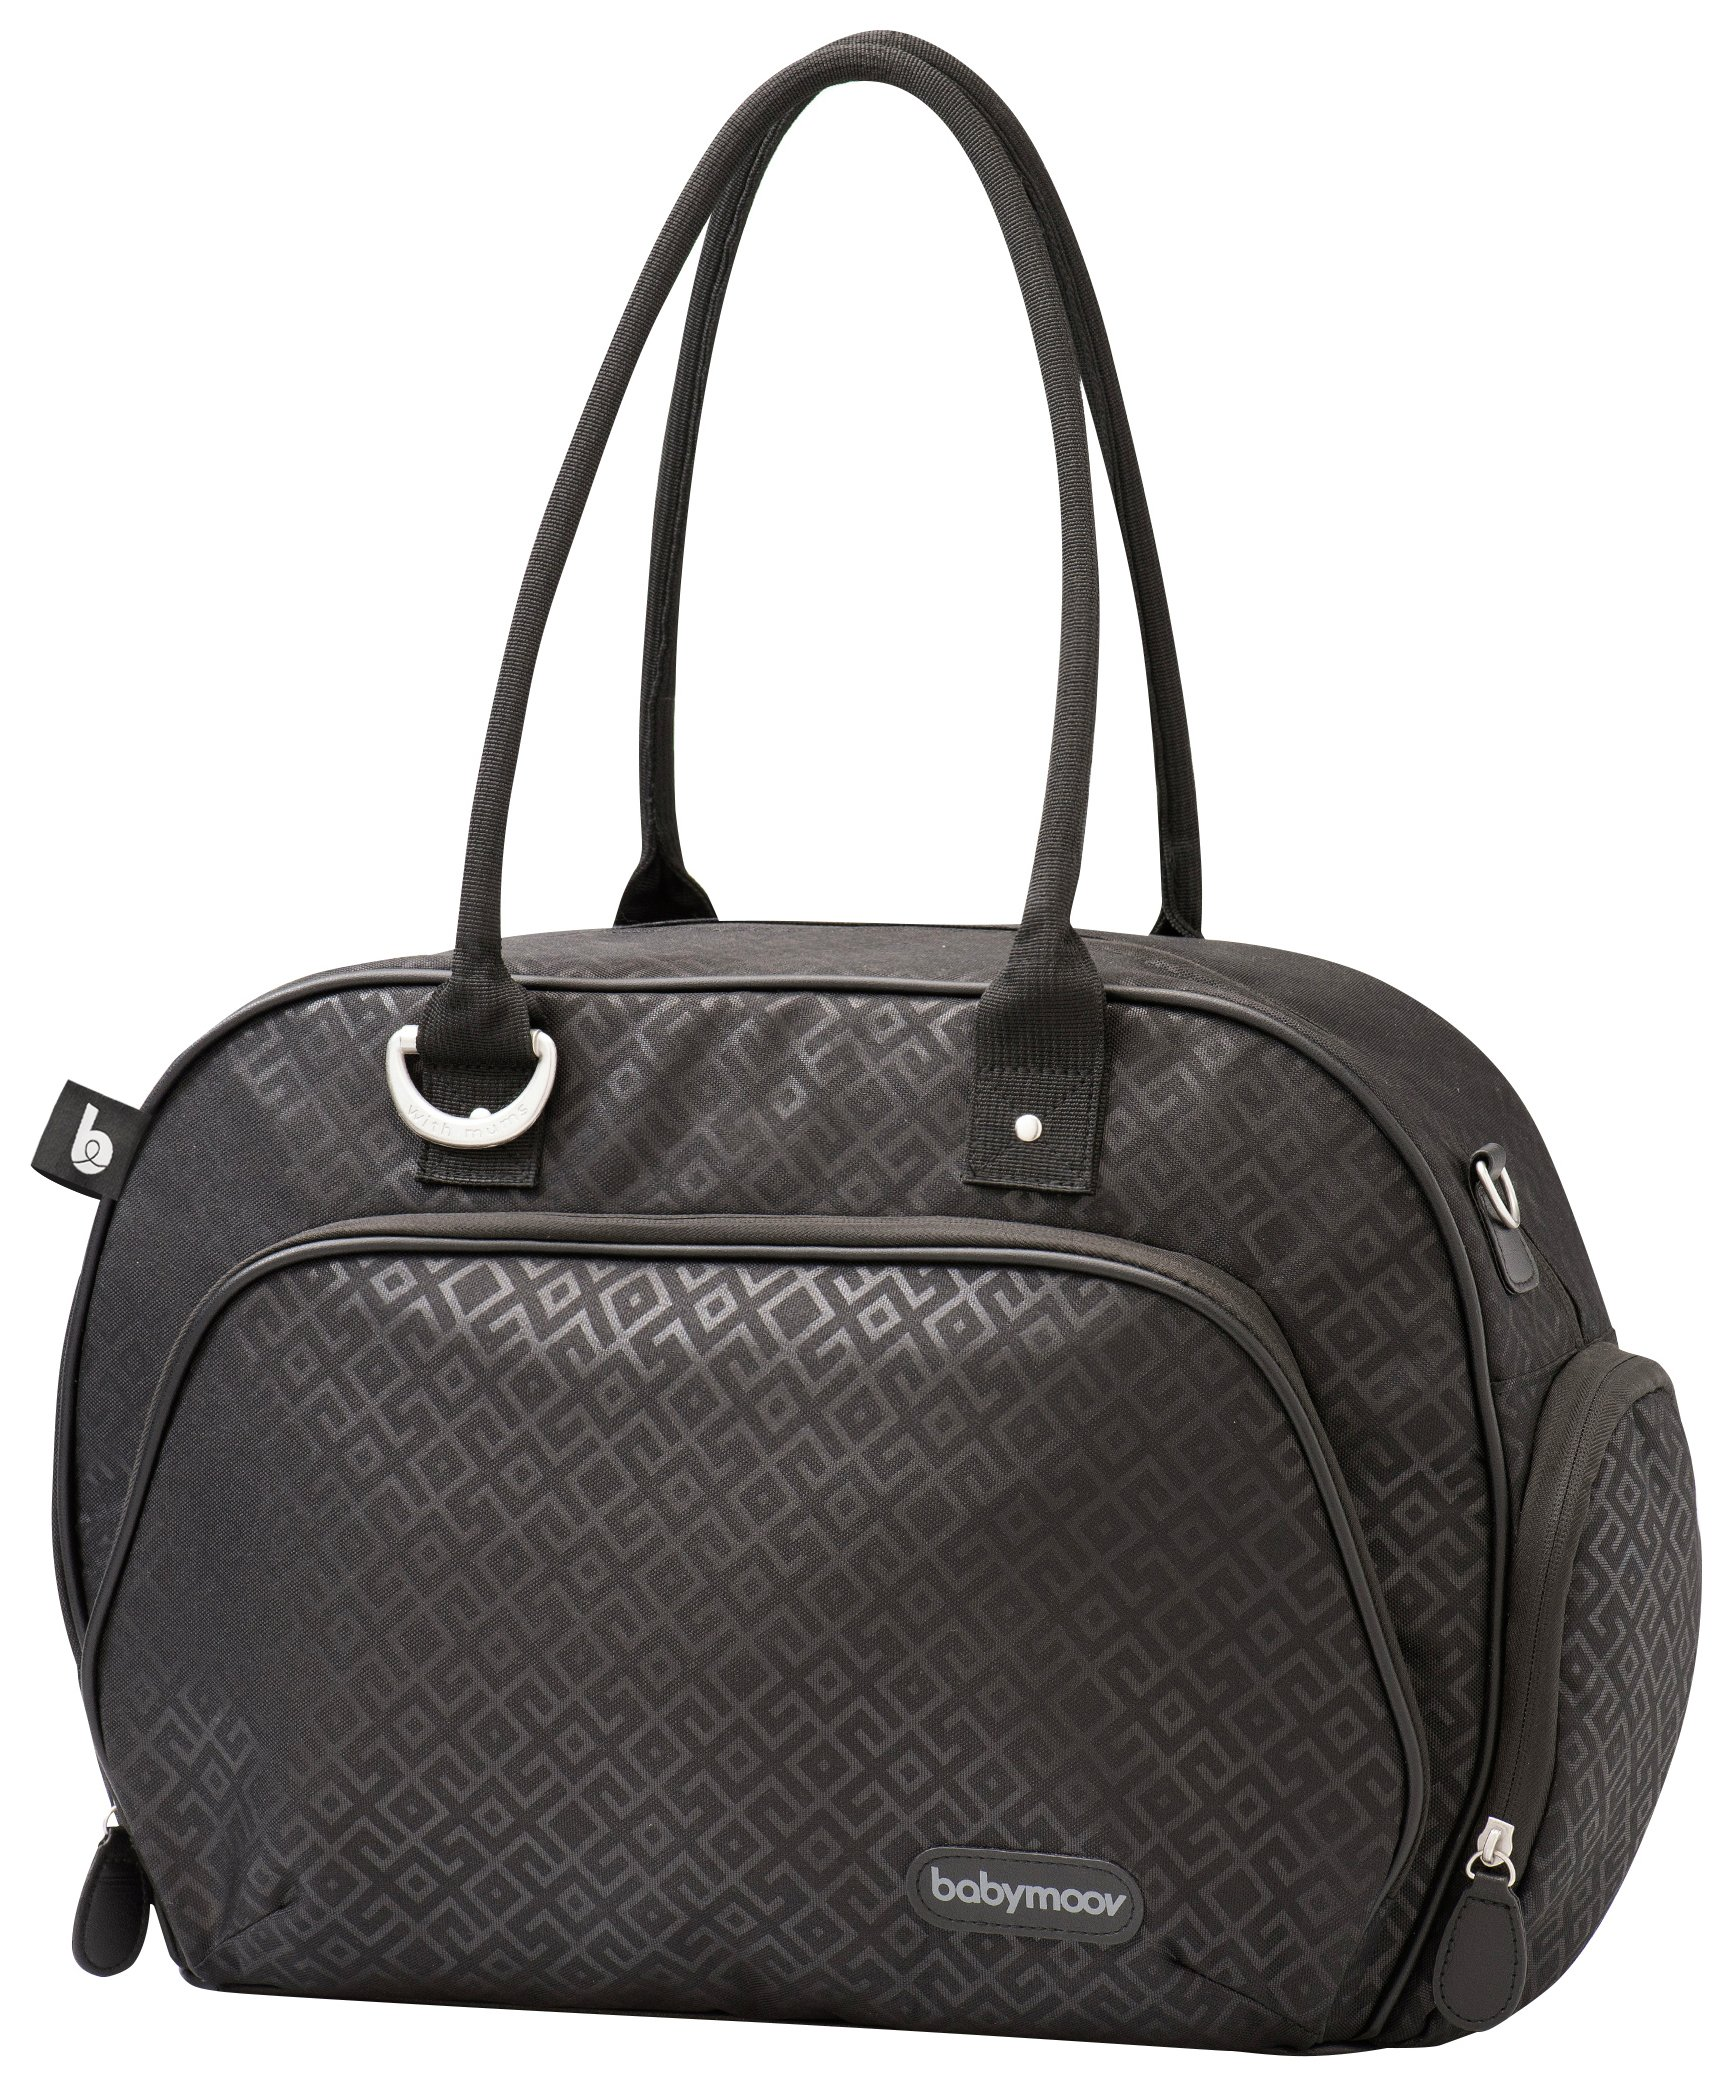 Image of Babymoov Black Trendy Bag.